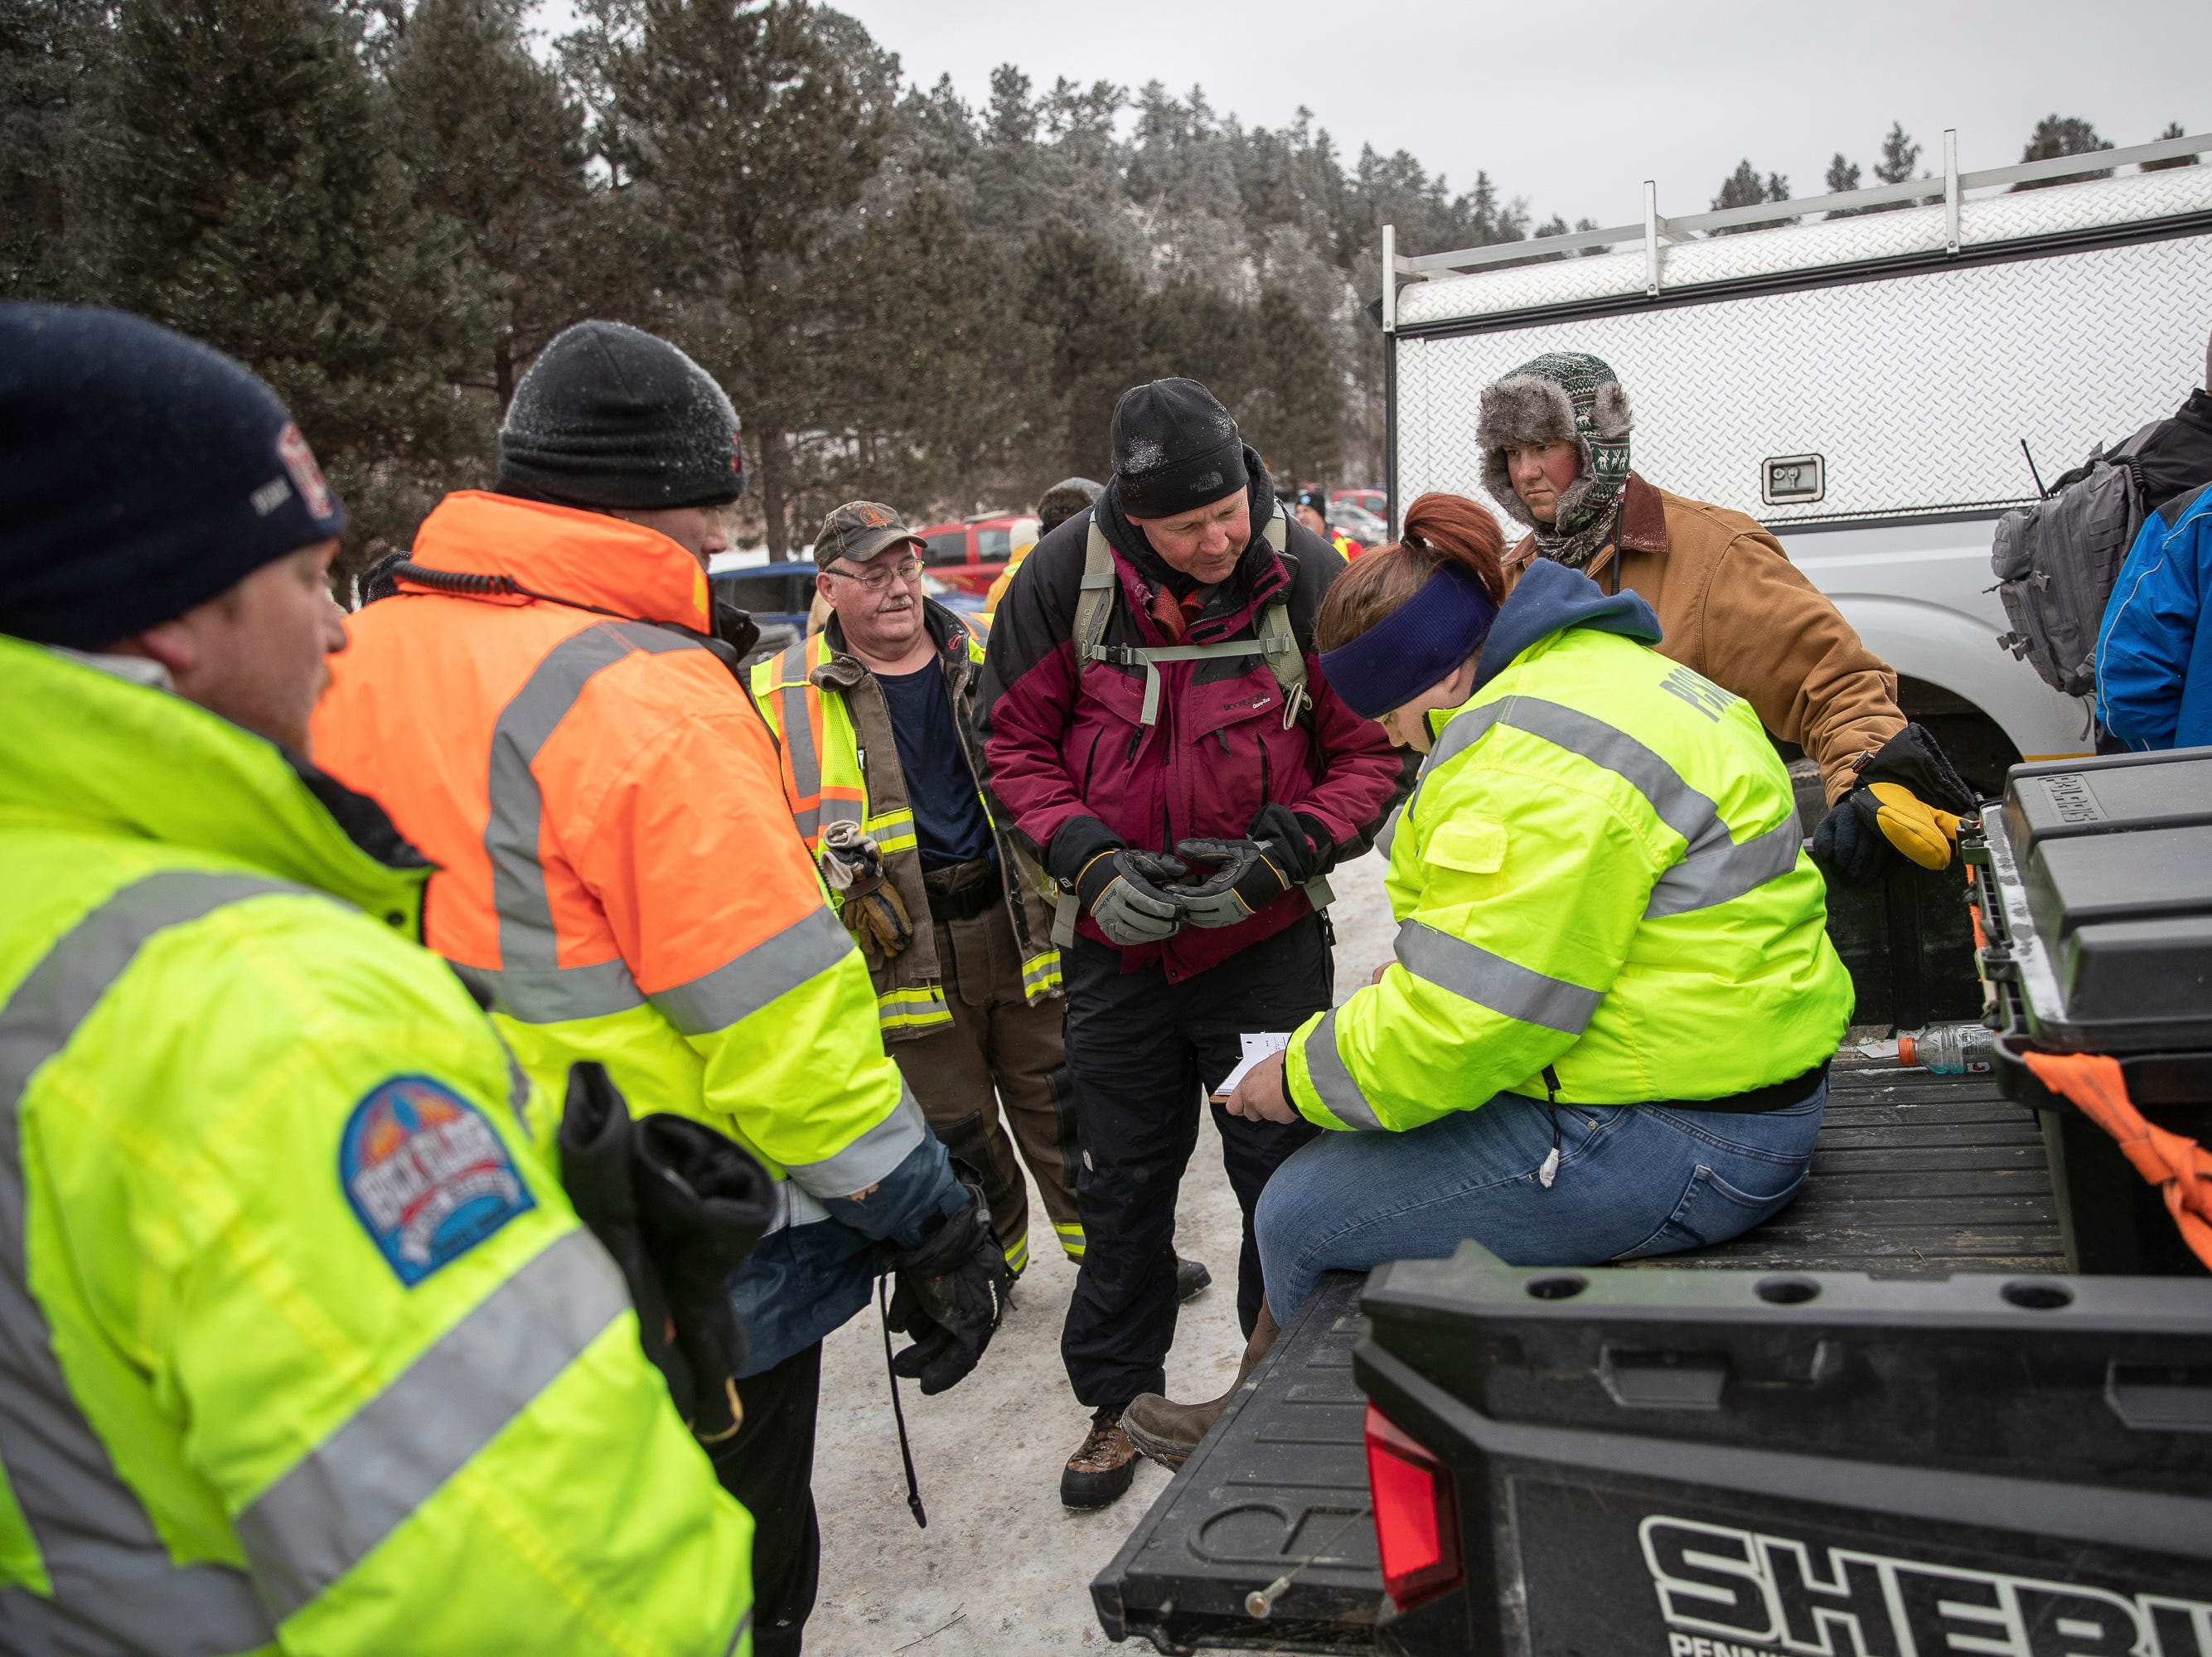 Searchers gather in a parking lot at the Black Hills Children's Home near Rockerville, S.D., on Tuesday, Feb. 5, 2019, after helping to look for Serenity Dennard, a 9-year-old girl who was last seen Sunday morning leaving the Children's Home. Officials are encouraging anyone living in the Rockerville, Foster Gulch and Highway 16 area to check their property. (Ryan Hermens/Rapid City Journal via AP)